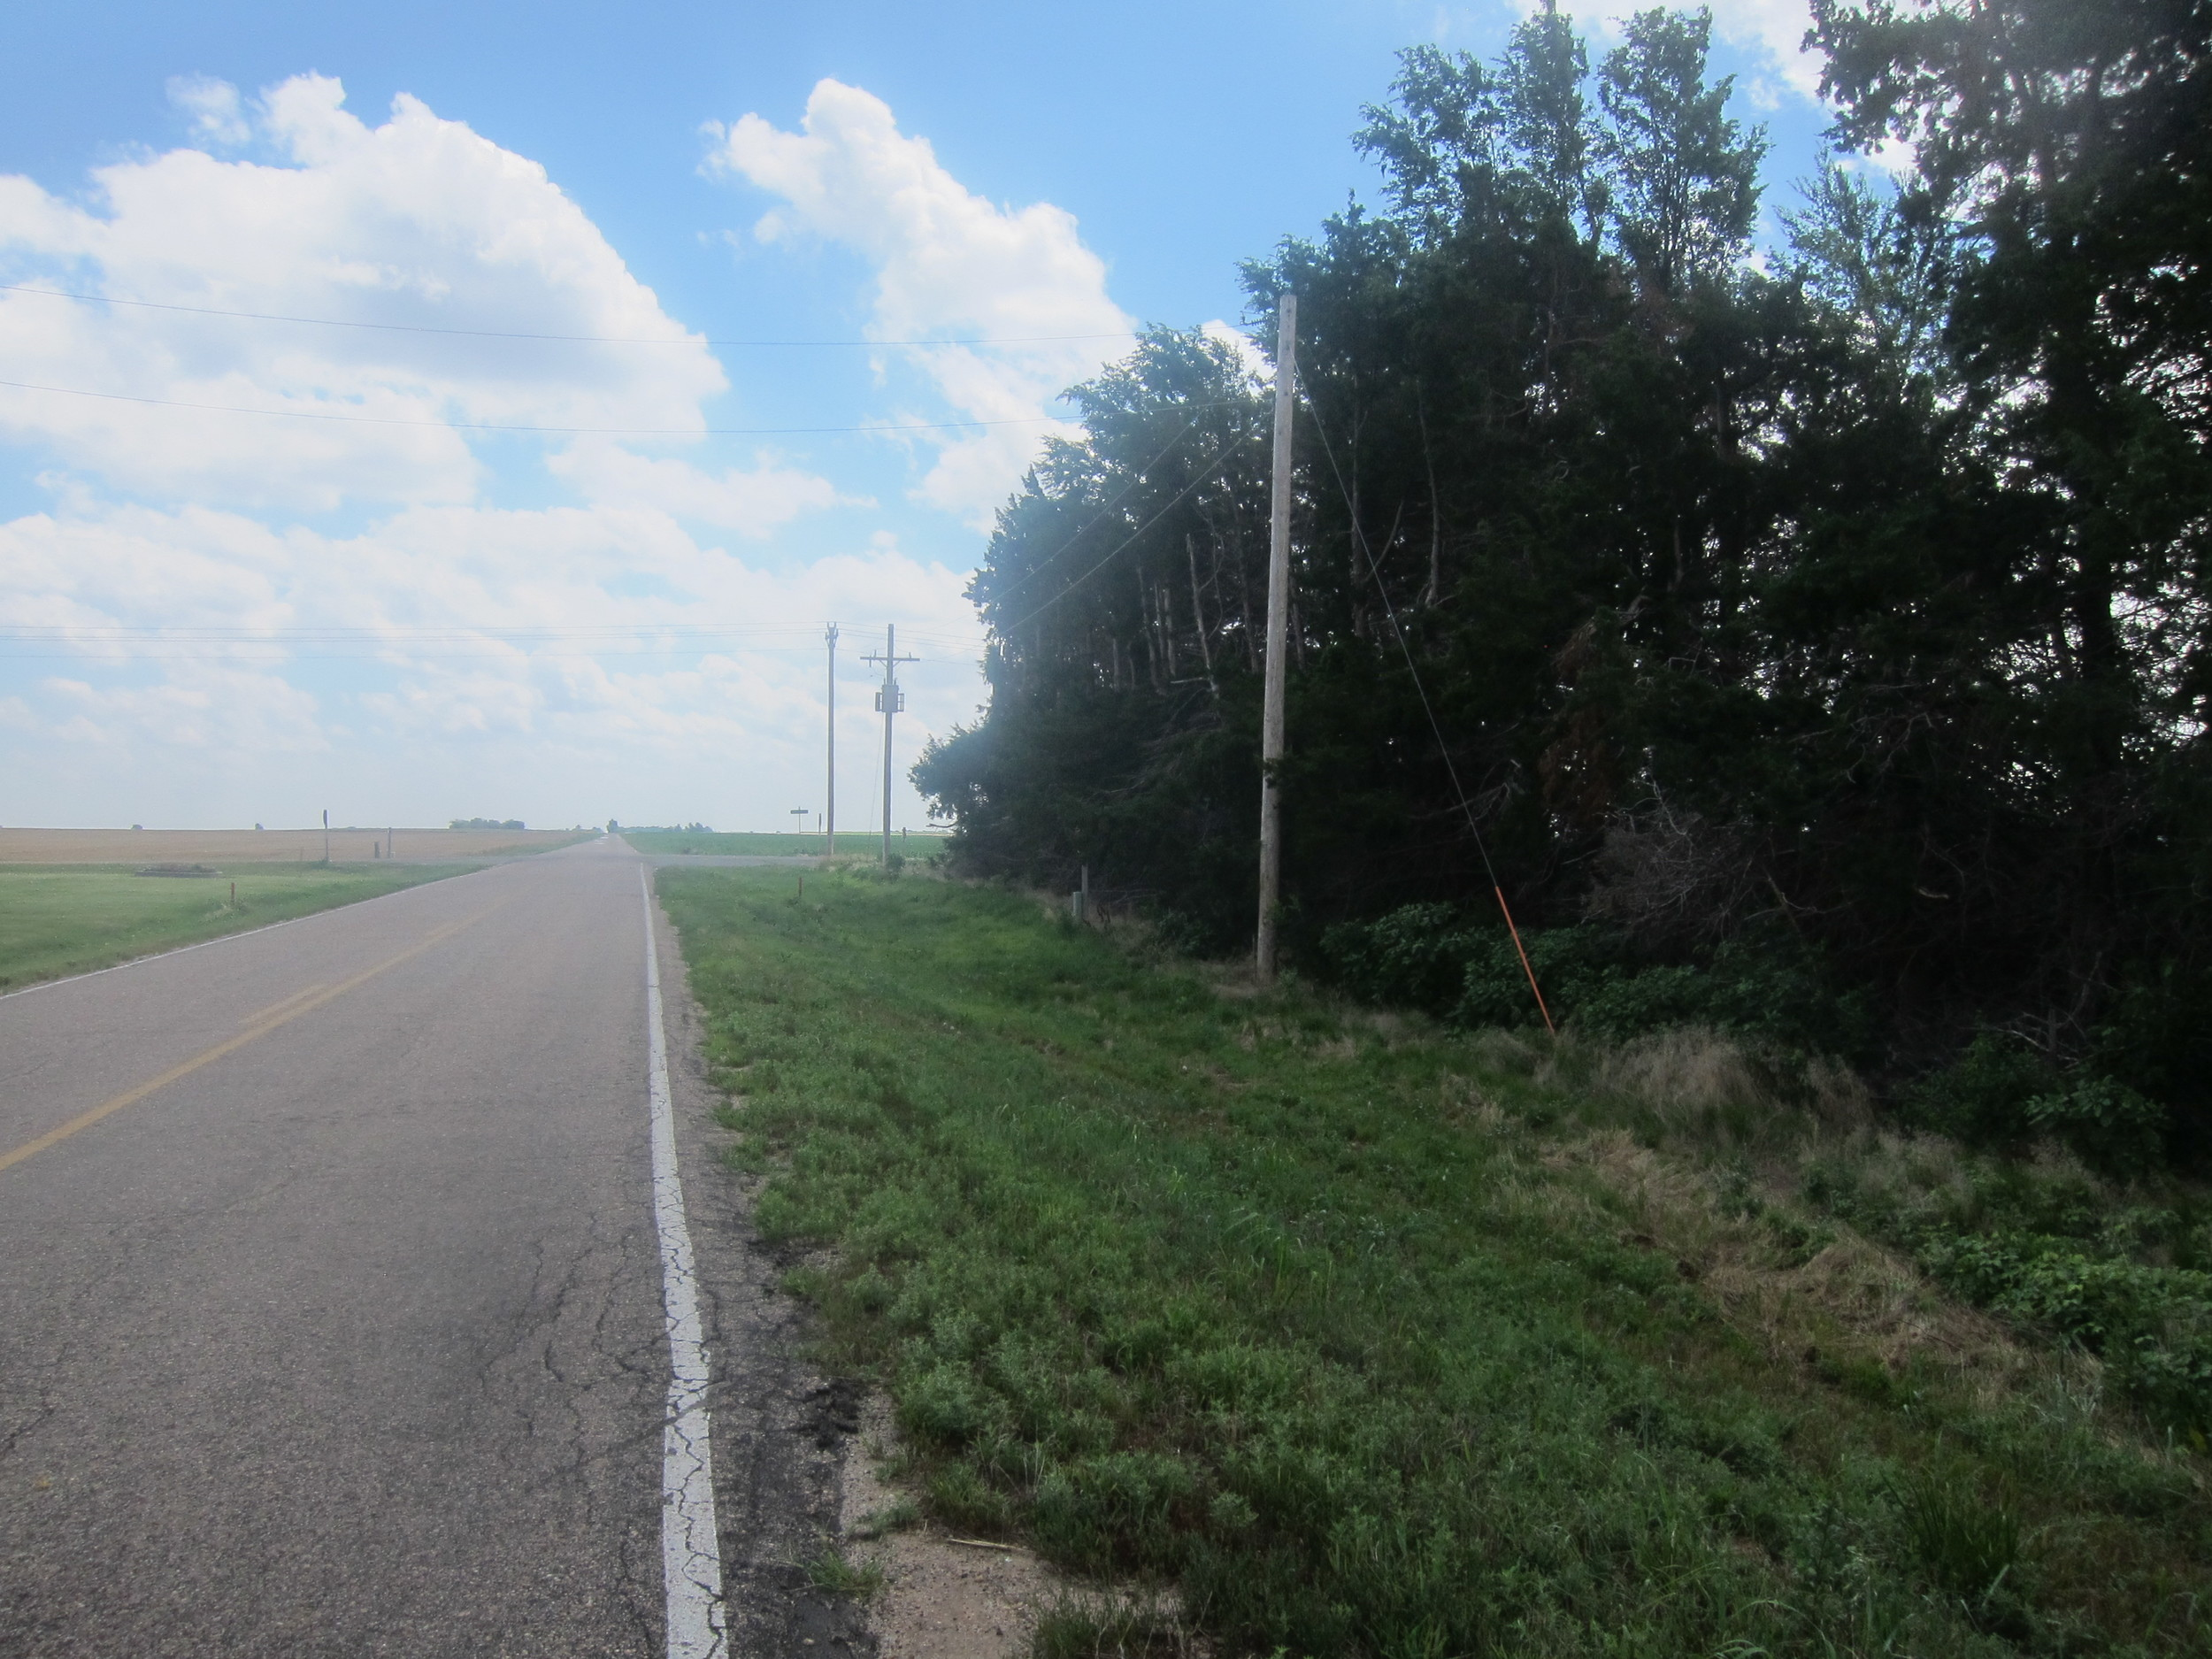 You get really excited about weird things in Kansas. Like, trees on your right that block the wind coming up from the south. It means you can cycle more efficiently for those 500 yards or so...